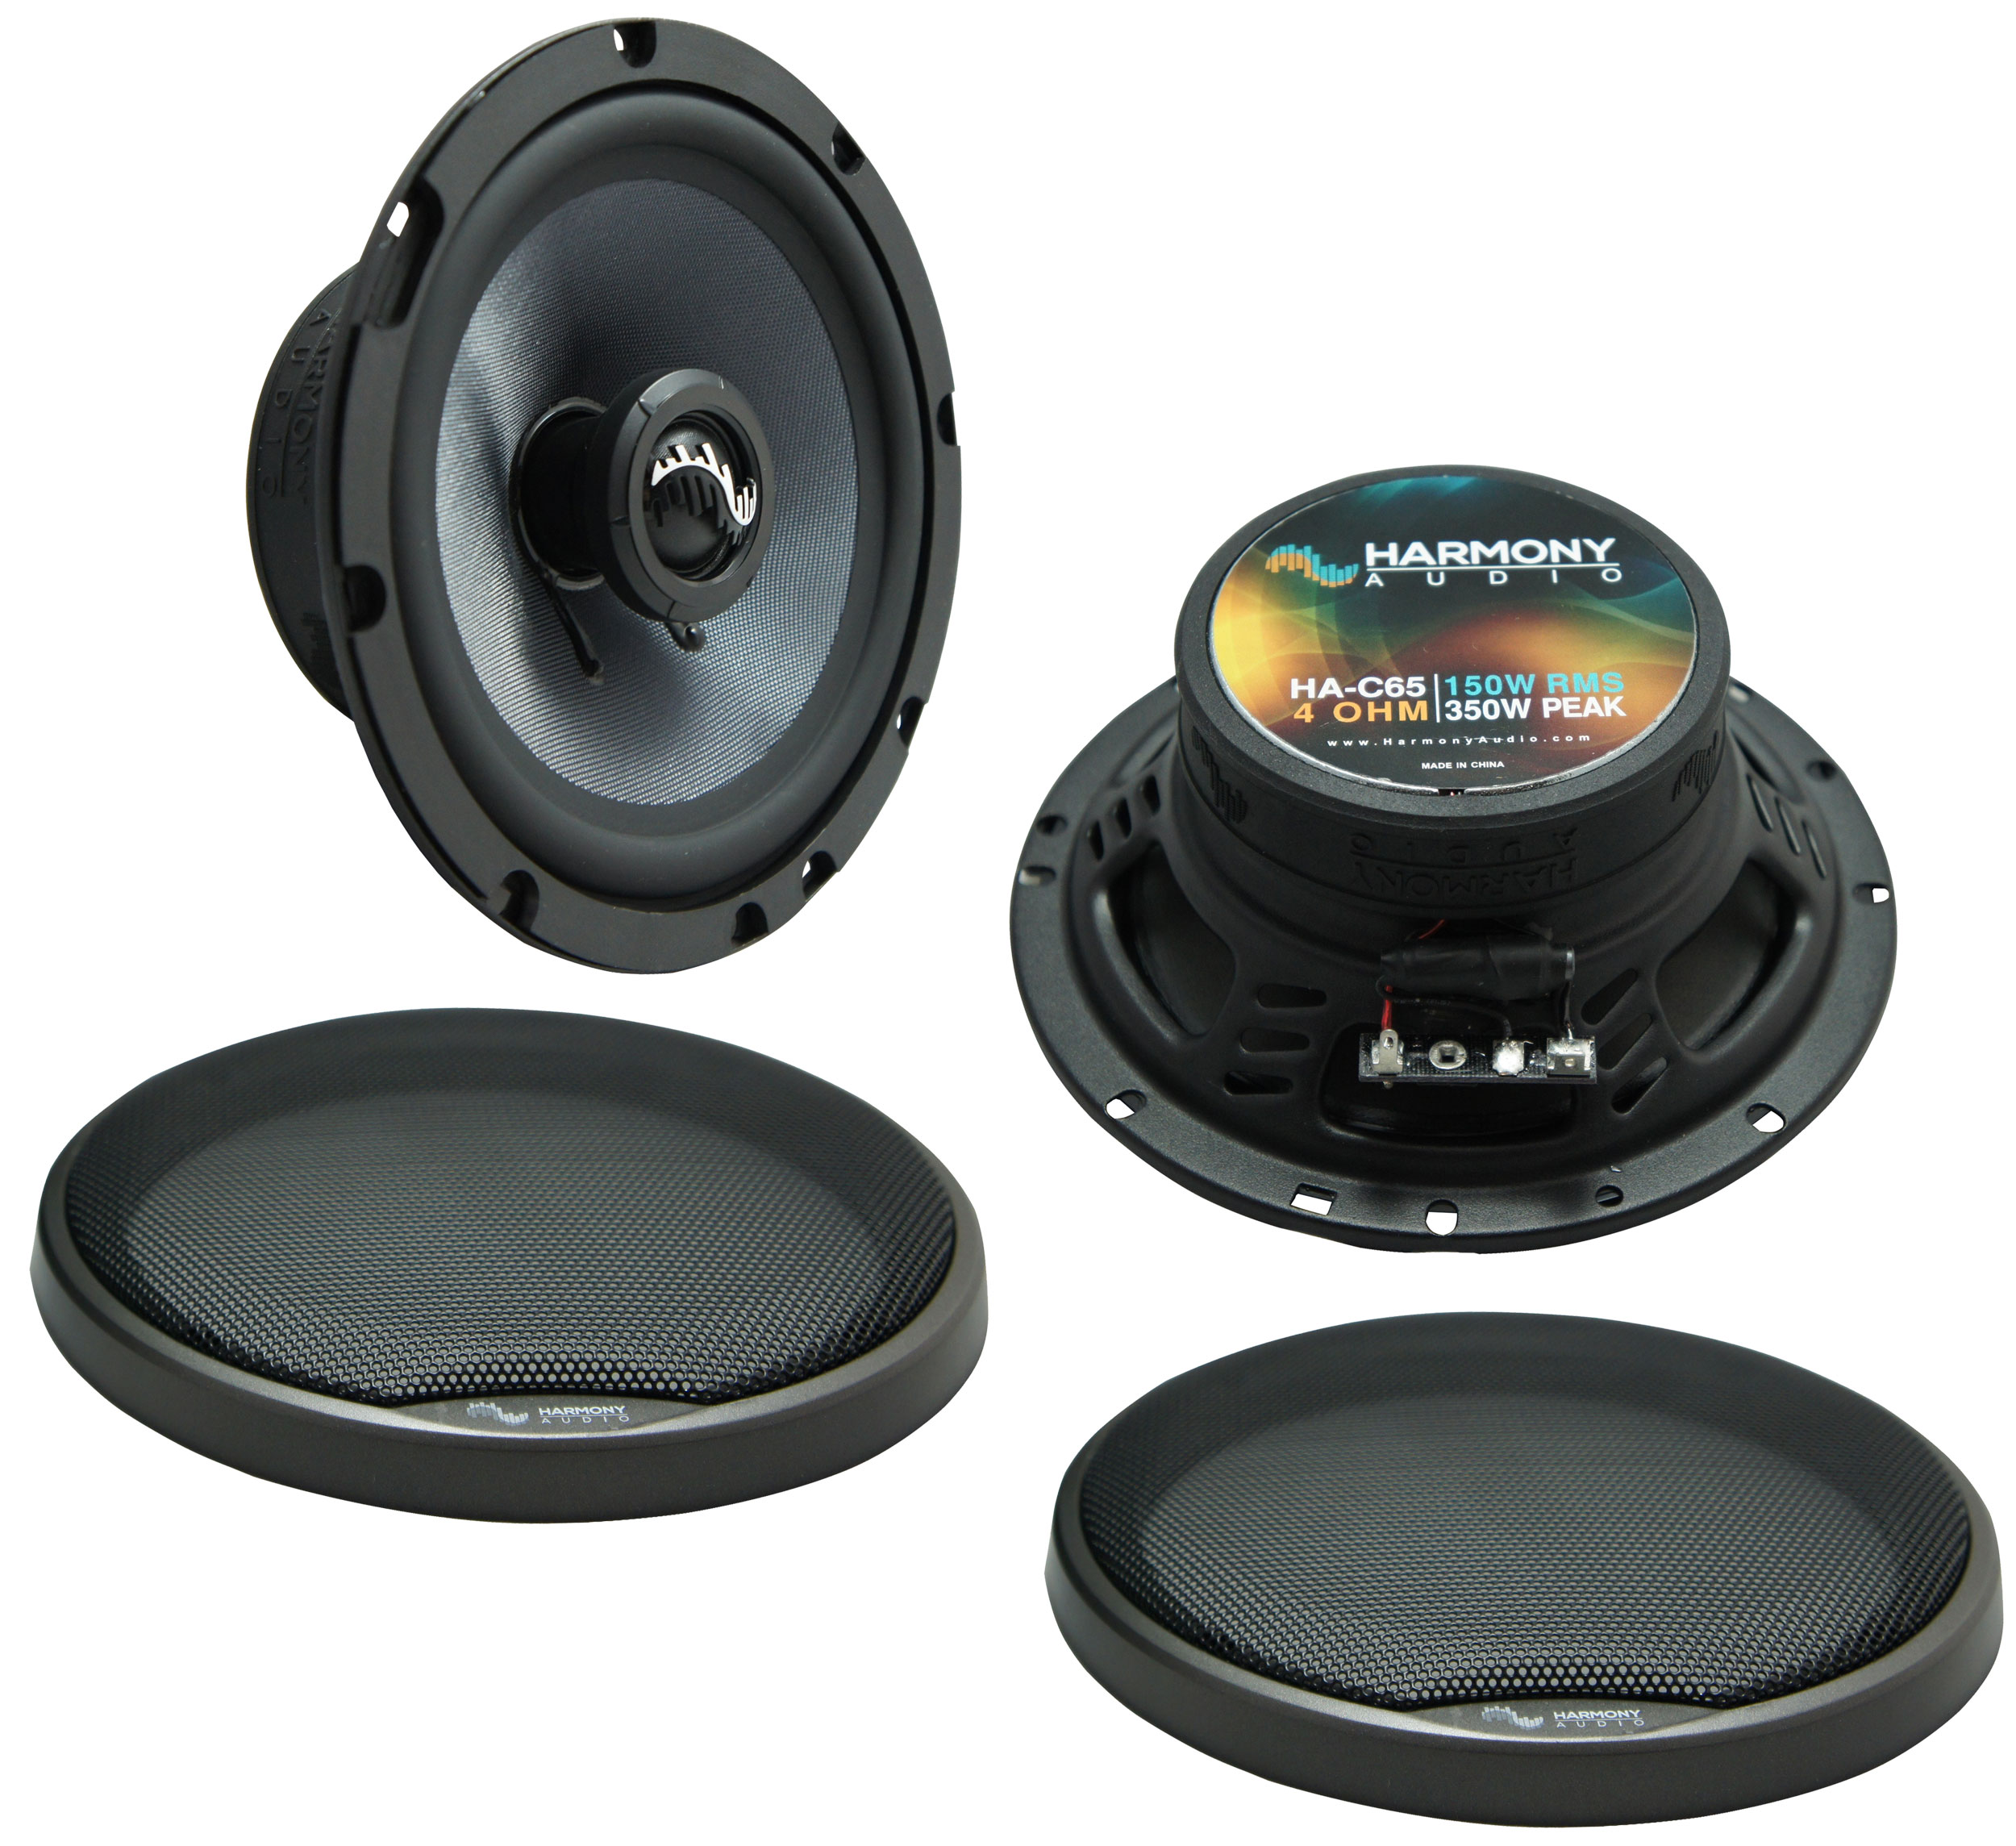 Fits BMW 3 Series 2002-2005 Rear Deck Replacement Harmony HA-C65 Premium Speakers New